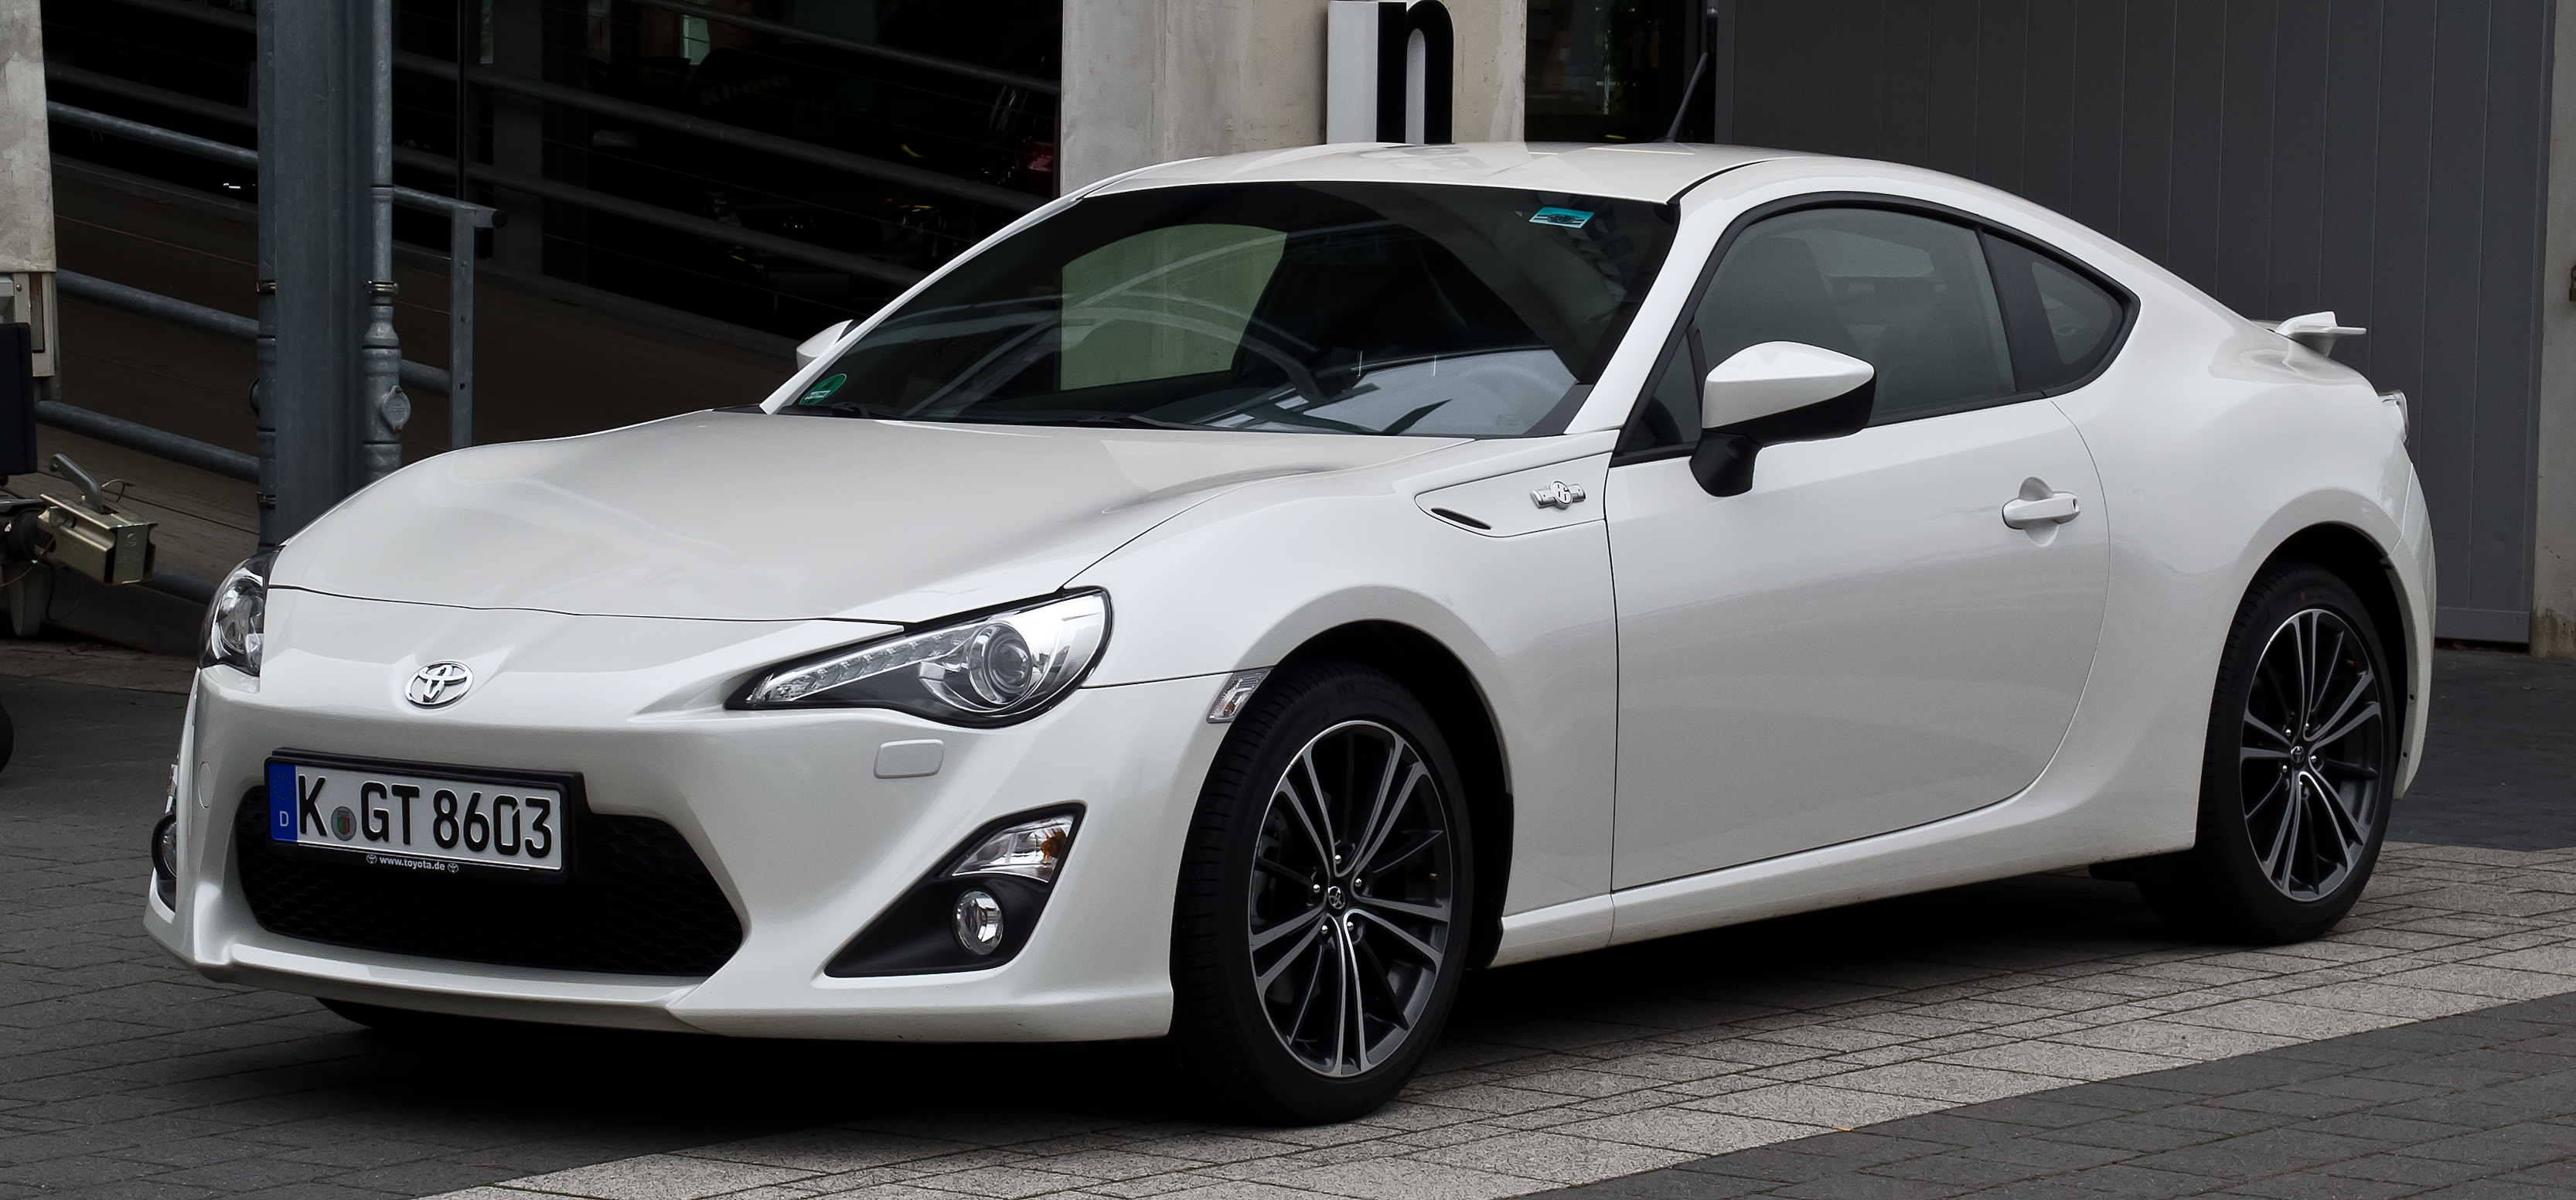 Toyota GT 86 Wallpapers High Quality | Download Free